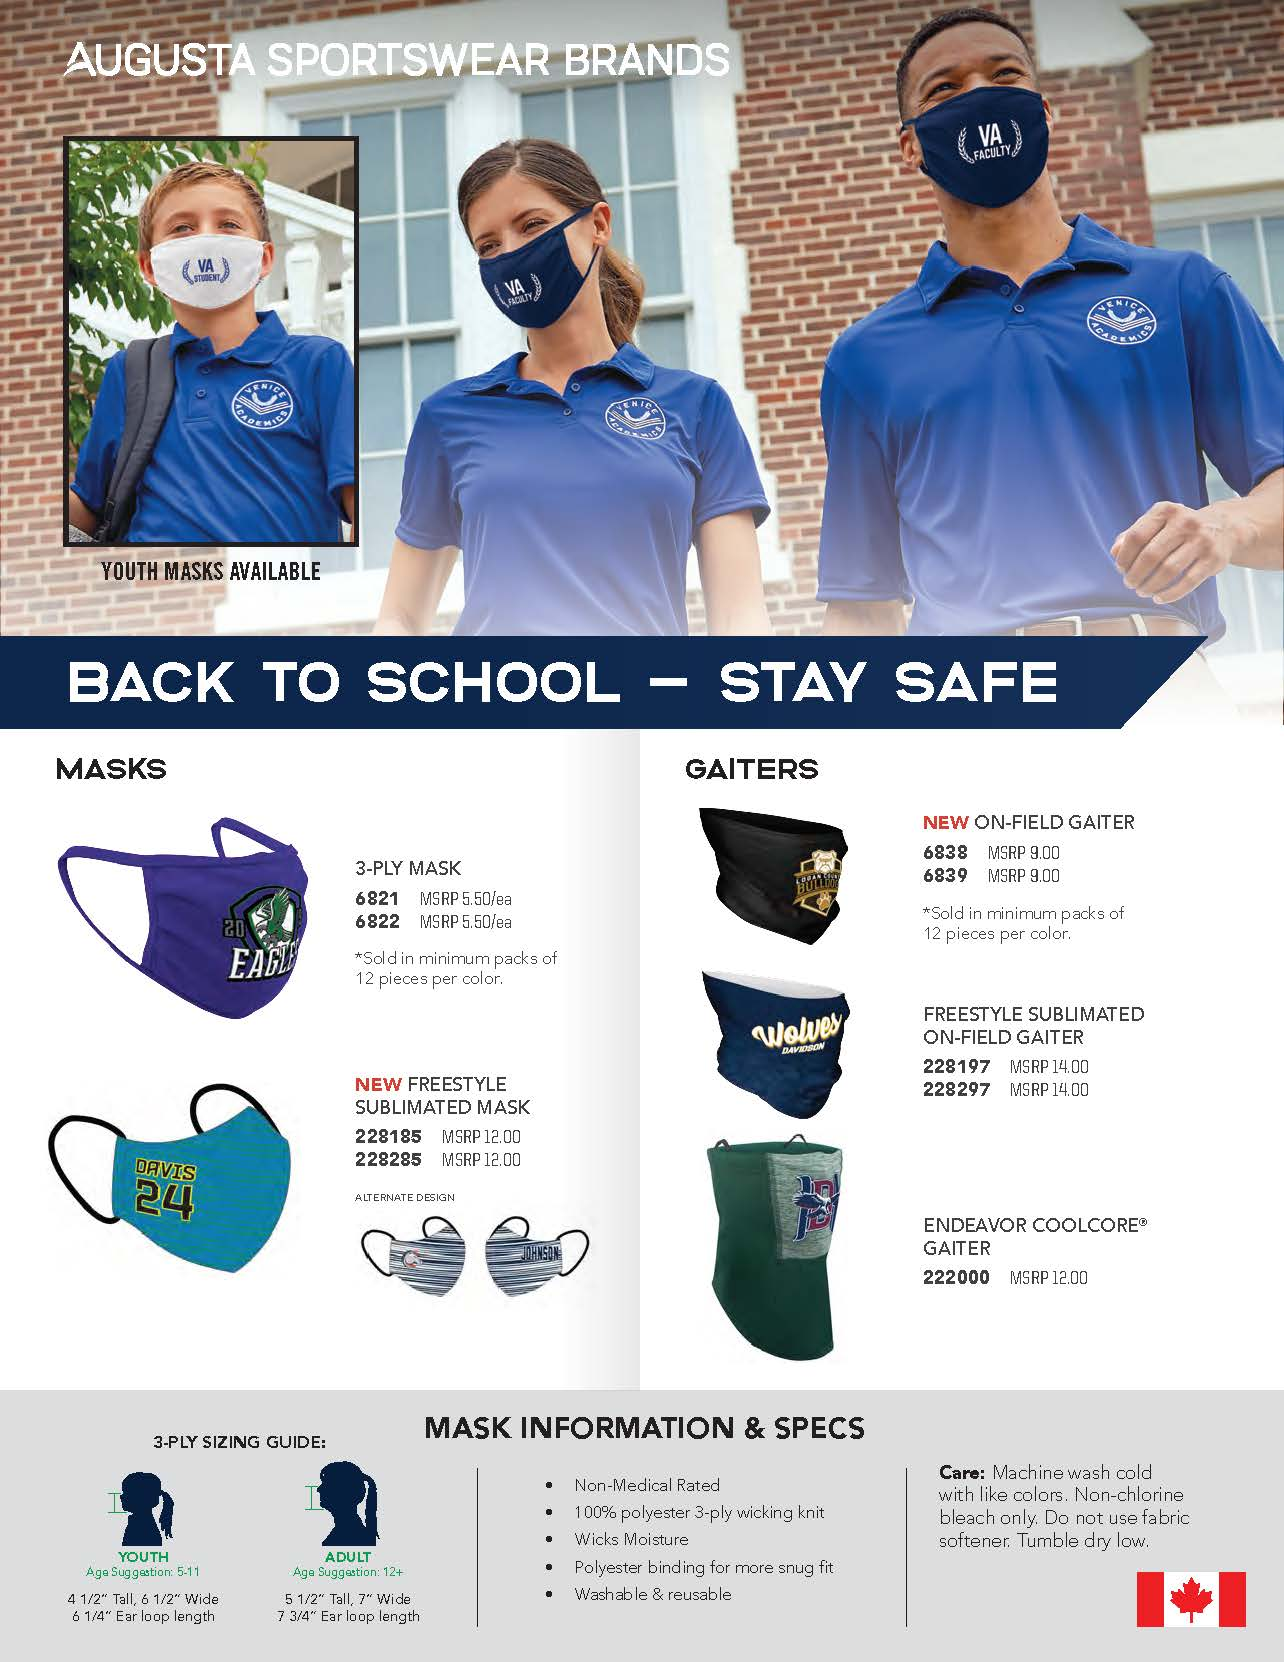 Go back to school safely with our face coverings